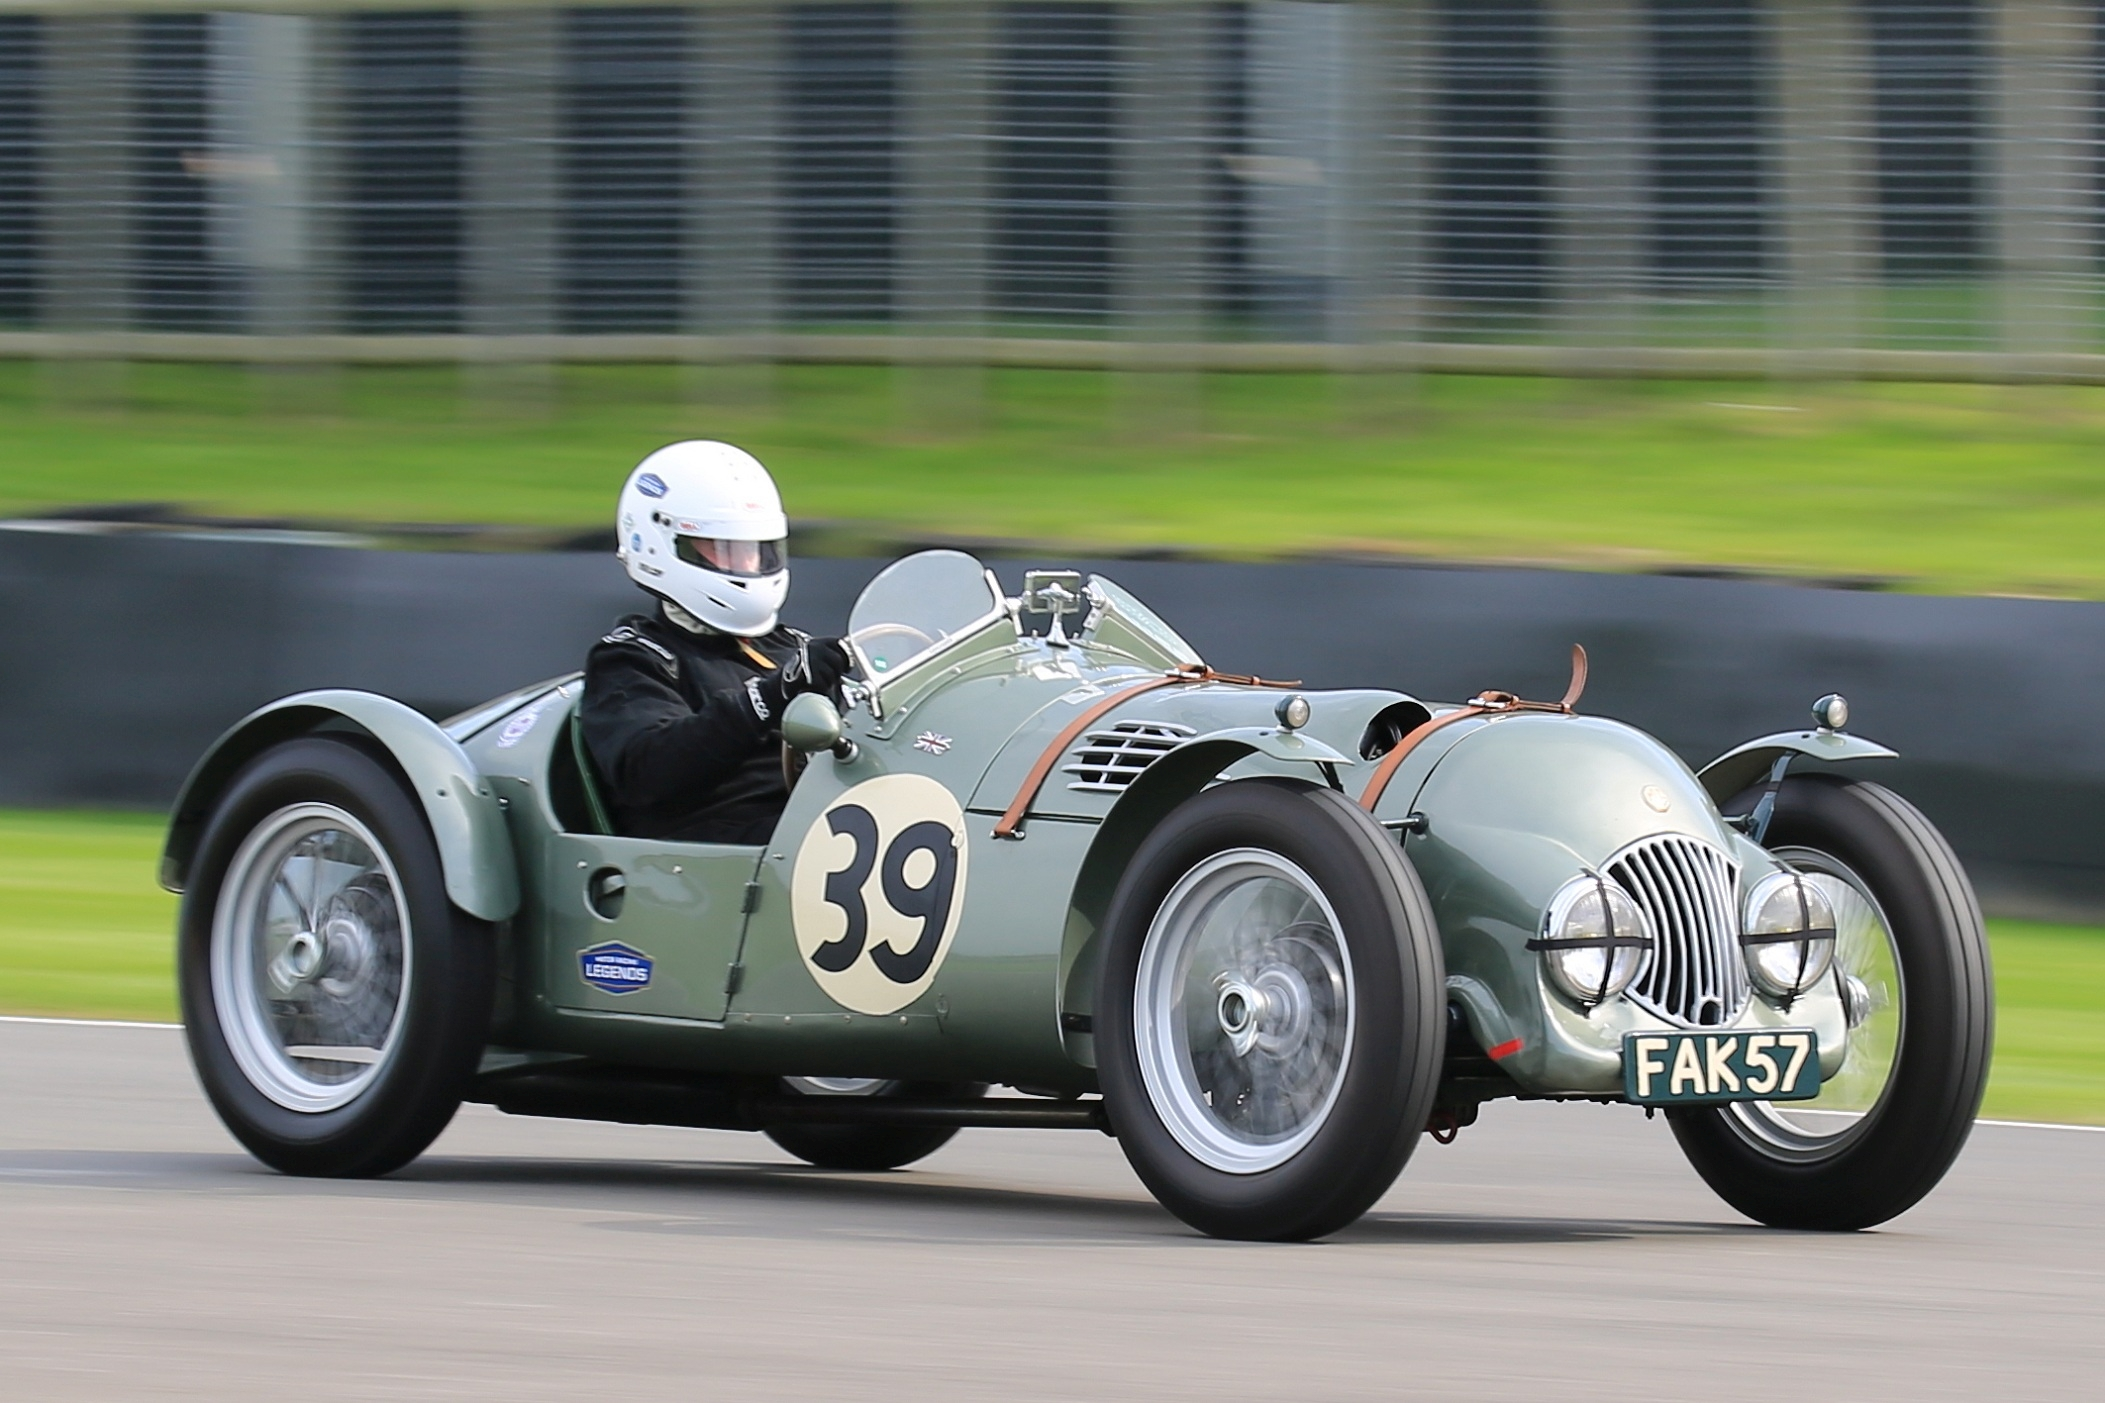 Car Auction Apps >> FAK57 accepted into Le Mans Classic 2016 - MG Car Club